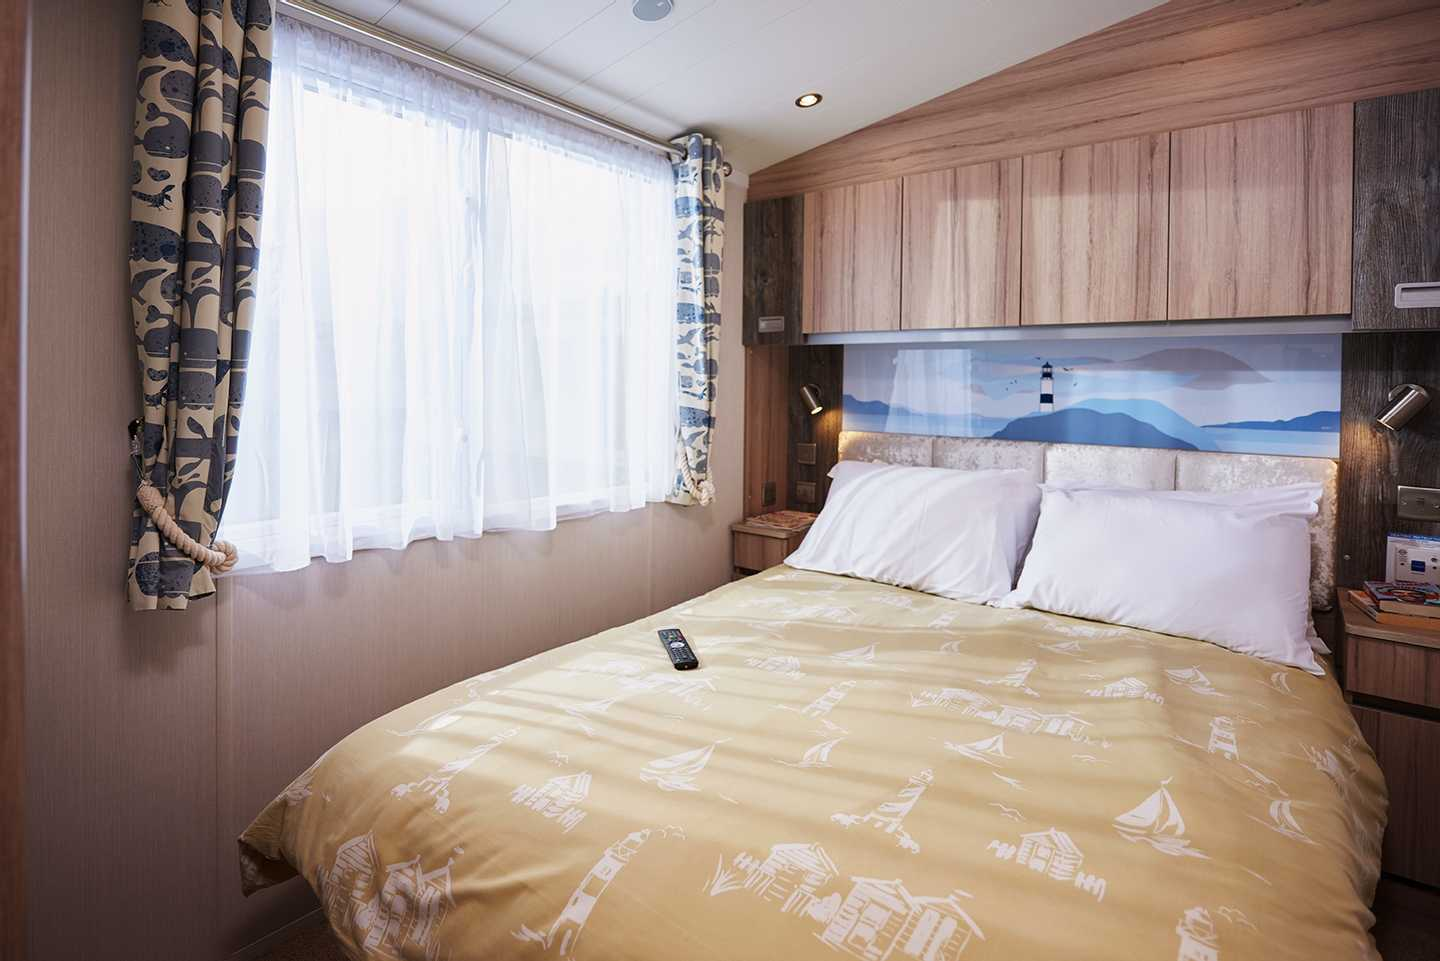 A Platinum caravan master bedroom with double bed, bedside tables and overhead cupboards